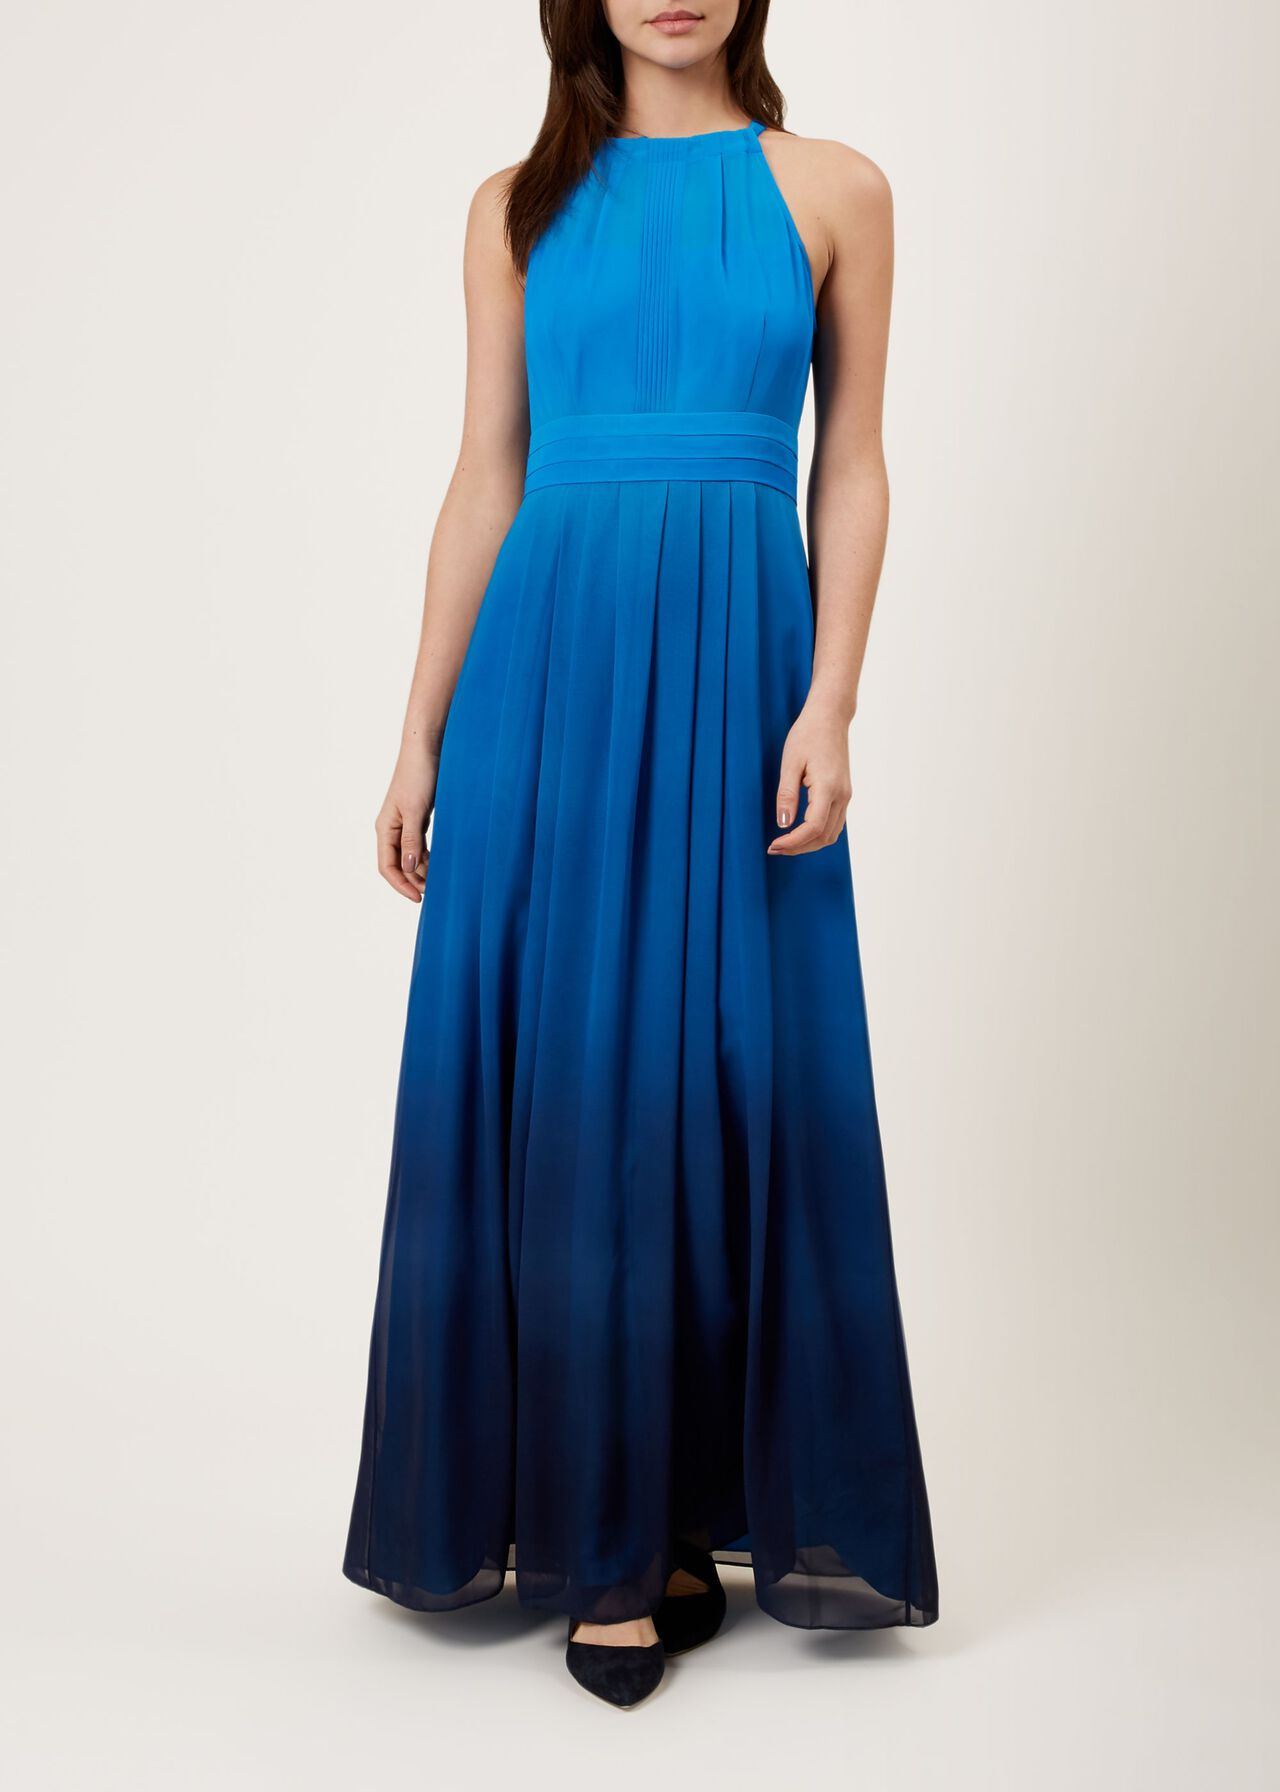 Alexis Maxi Dress Kingfisher Mul